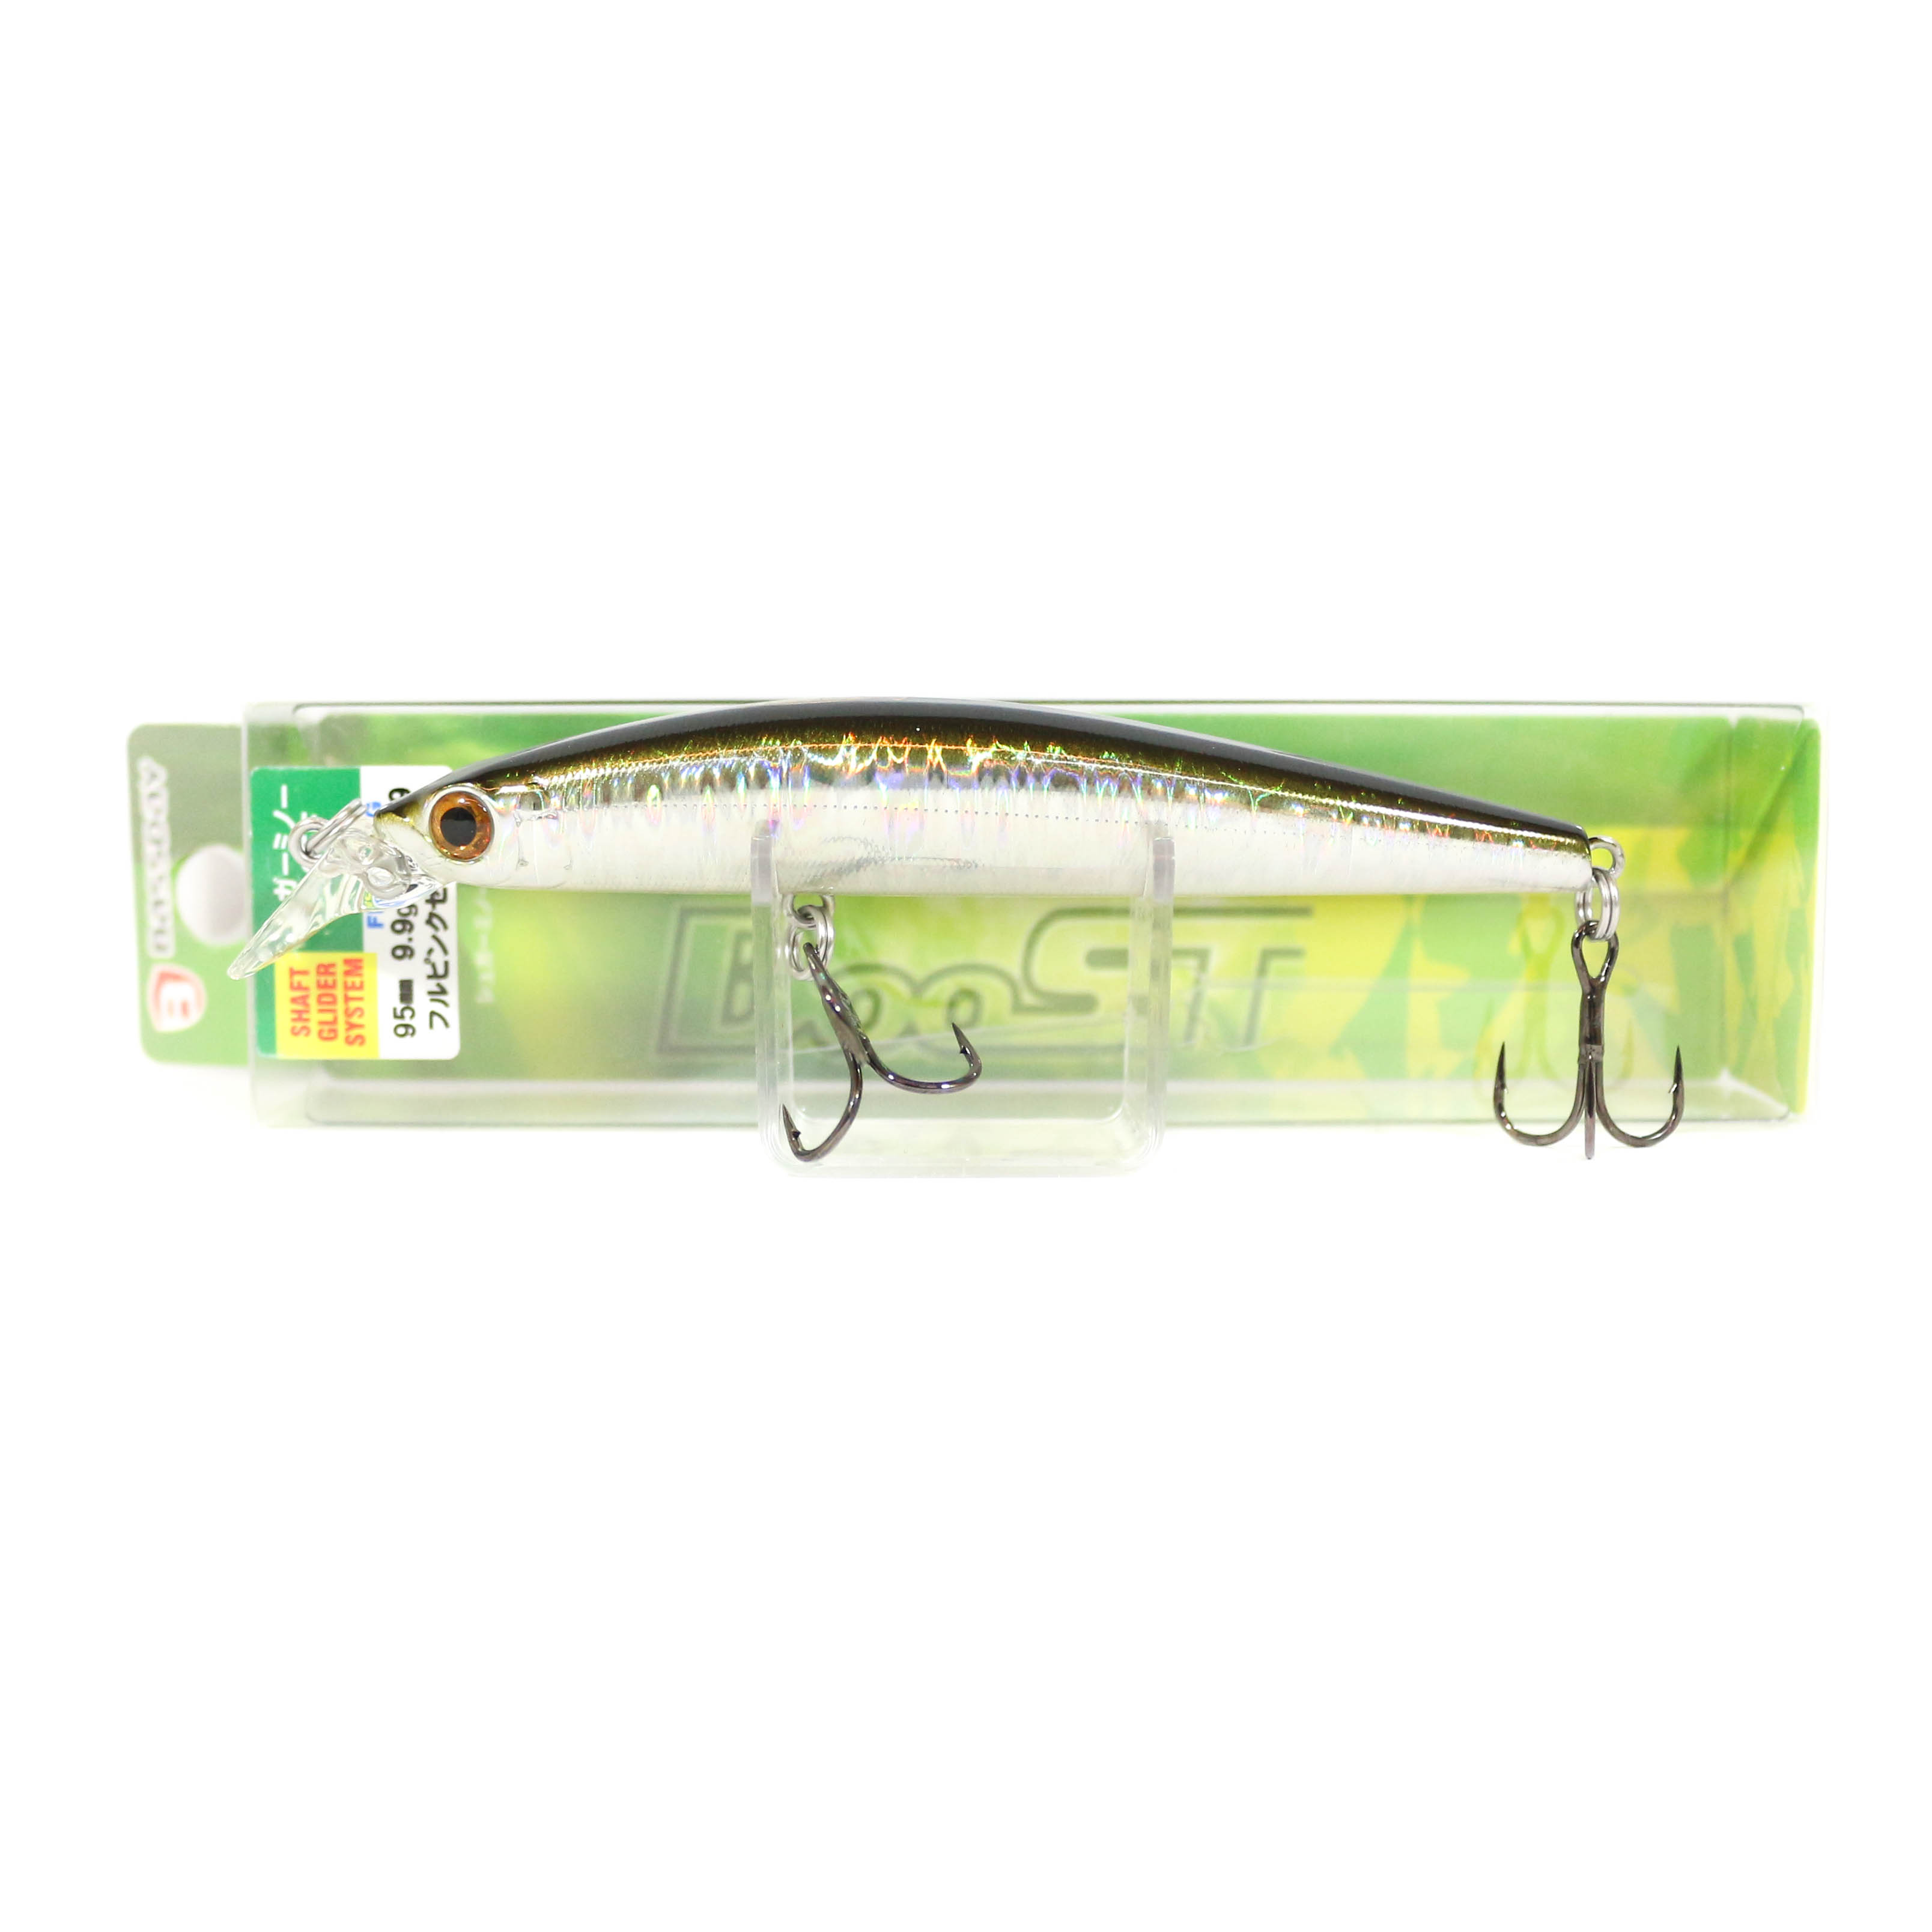 5096 Bassday Sugar Pen 58F Floating Lure 4.1 grams MH-128